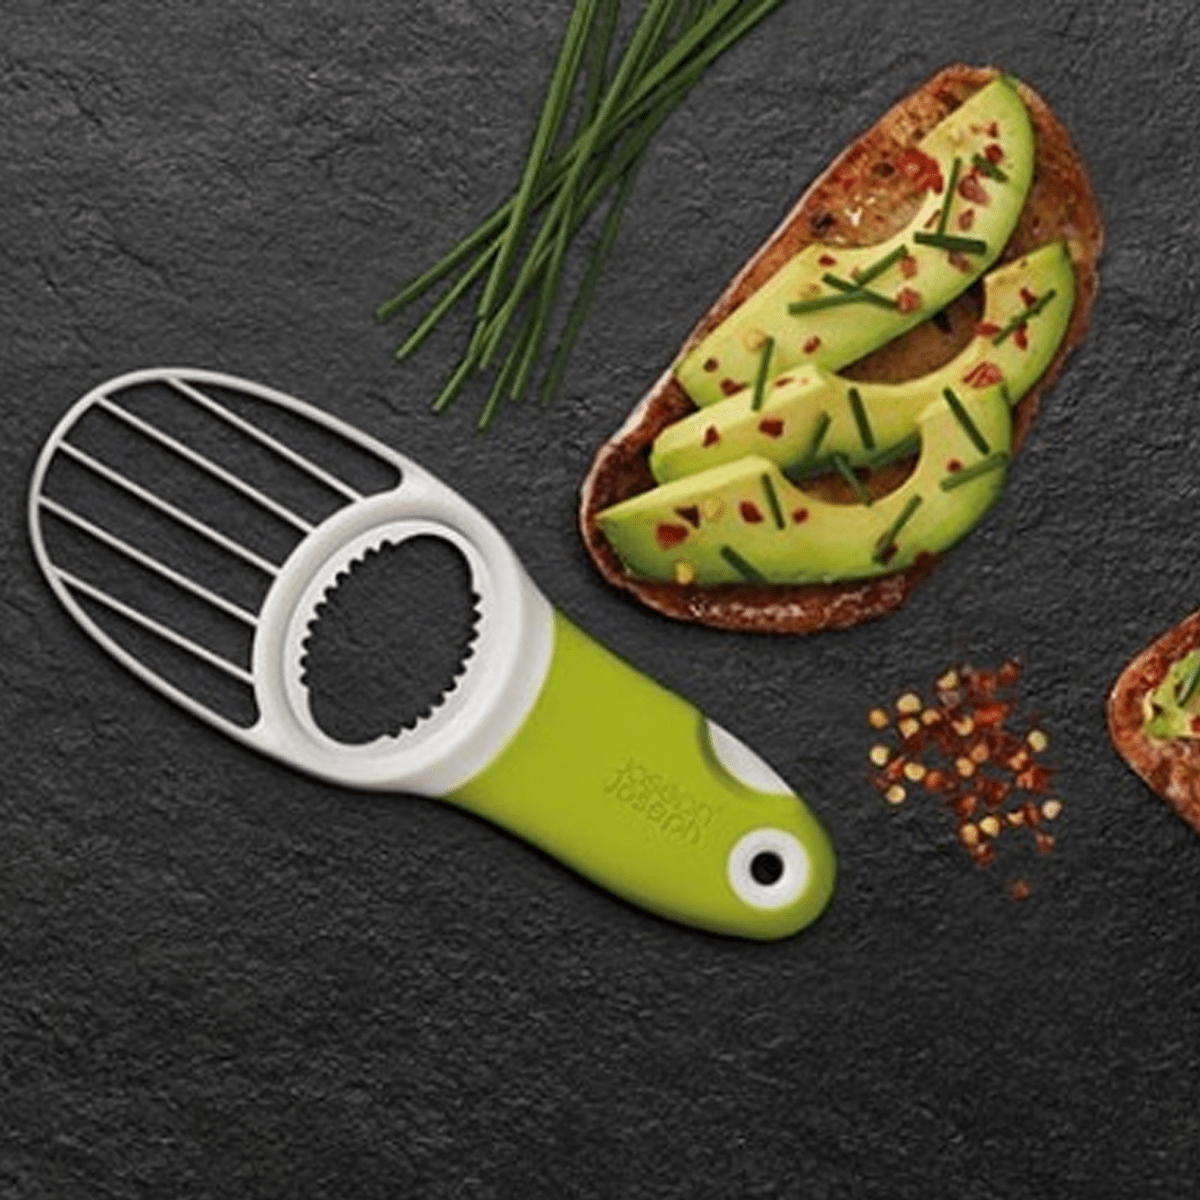 Joseph Joseph GoAvocado 3-in-1 Avocado Tool